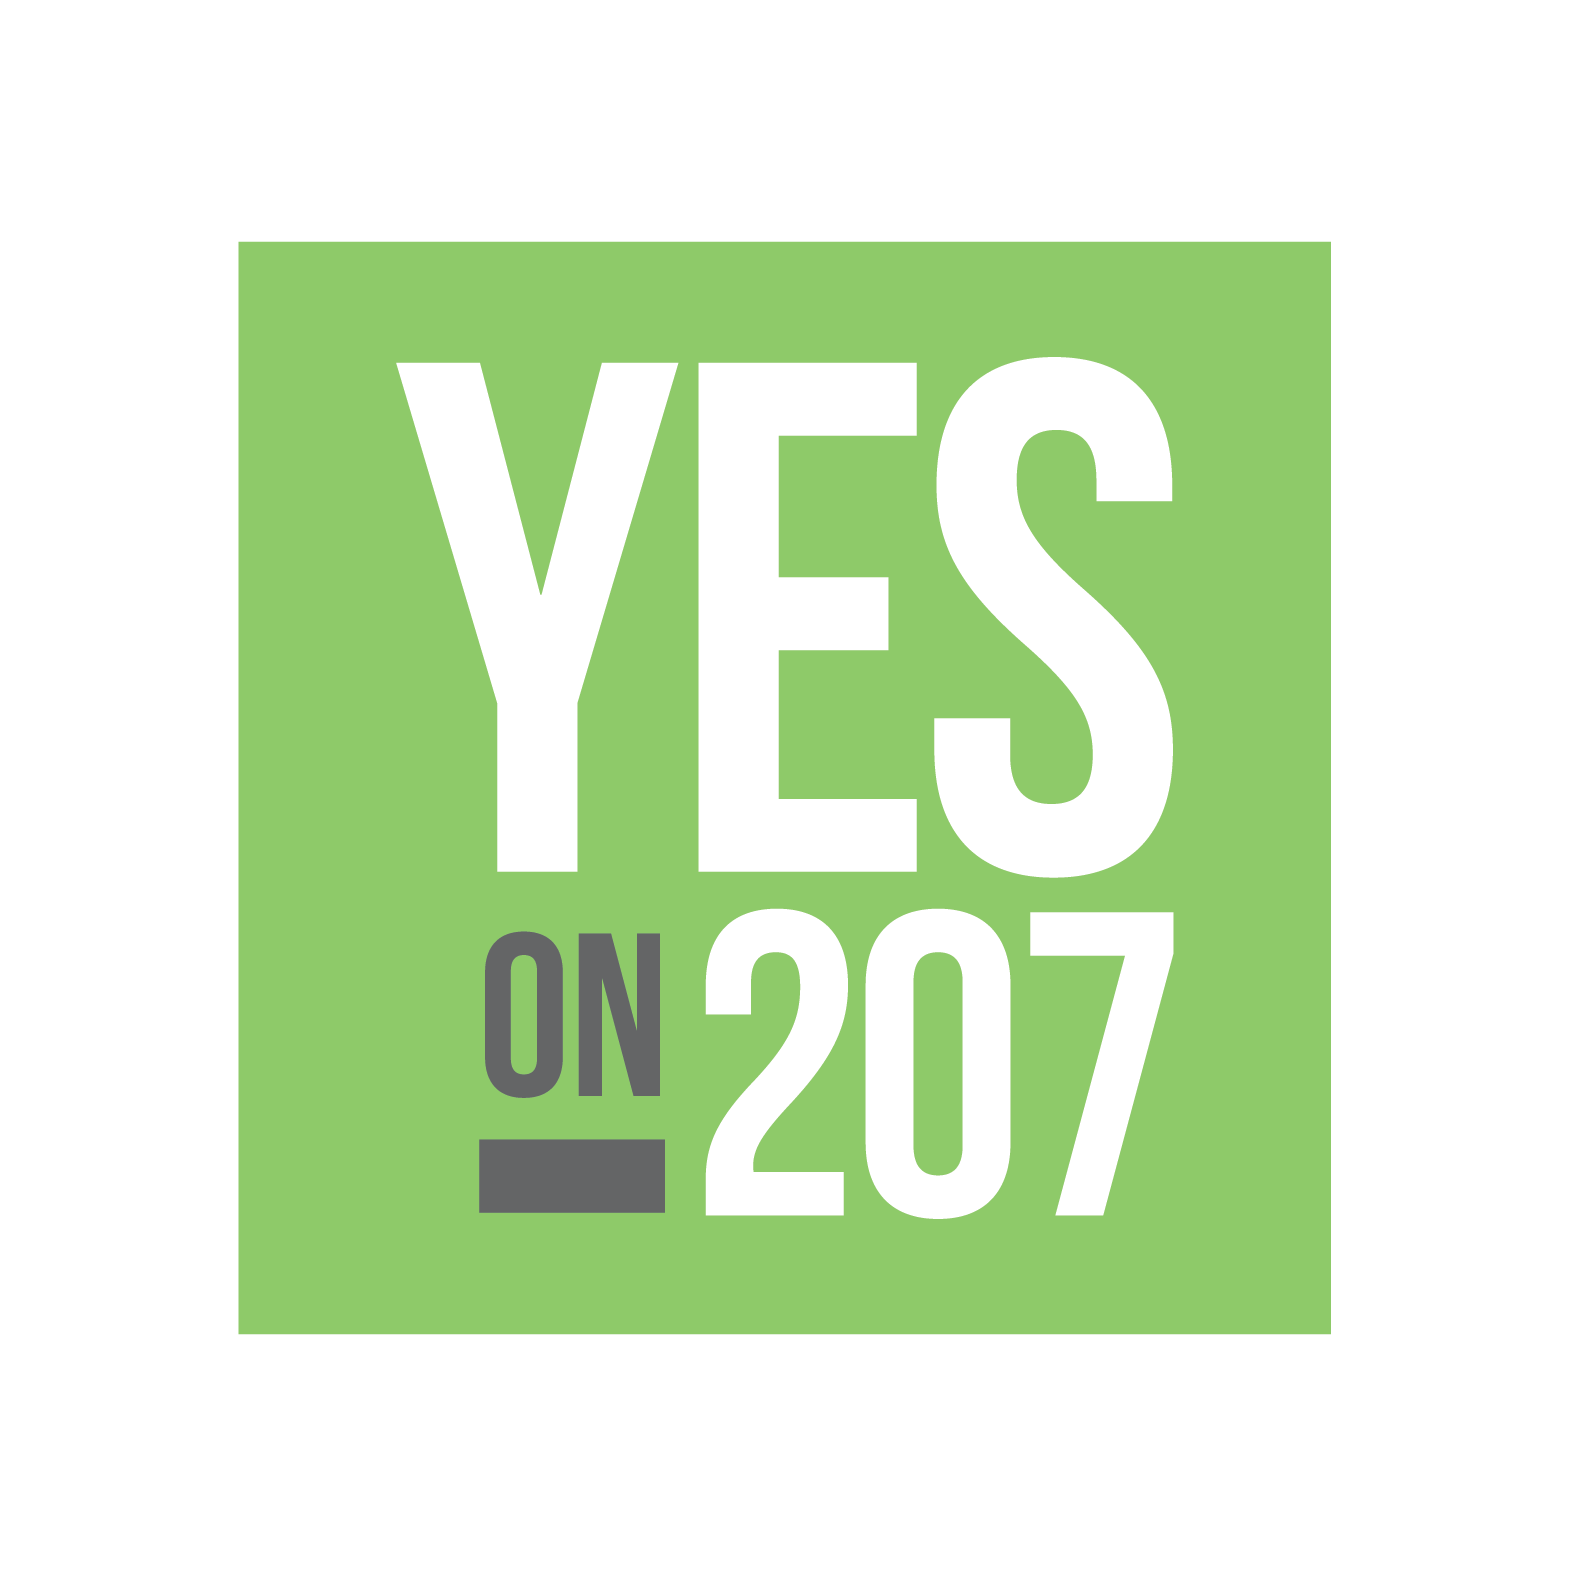 Yes on Prop 207 Arizona